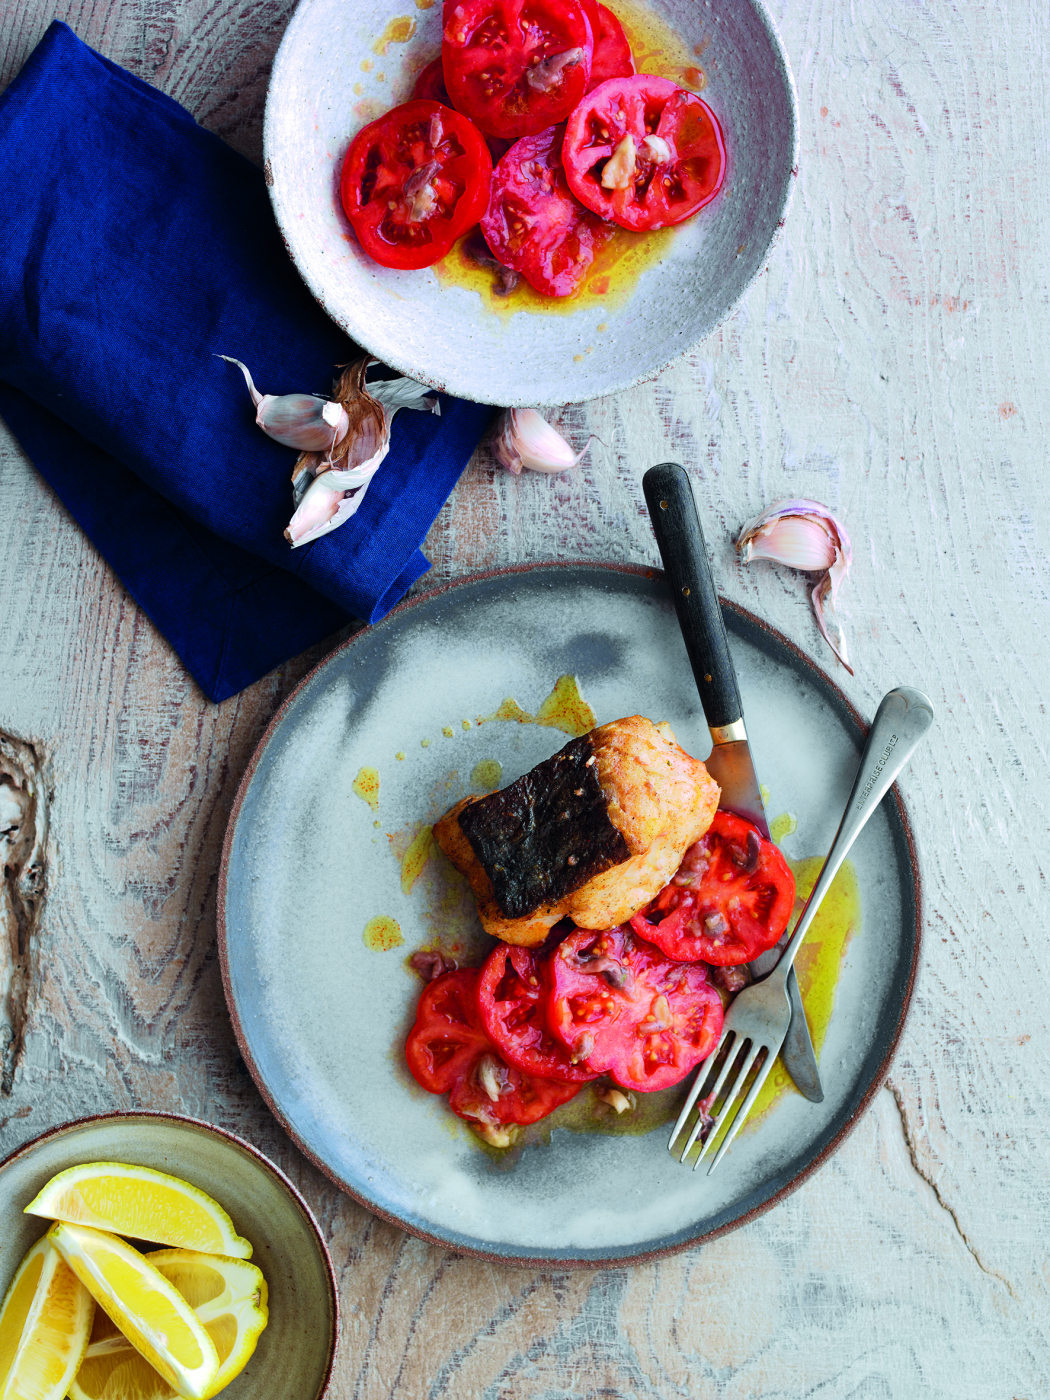 Roast Norwegian cod with vine tomato and anchovy salad